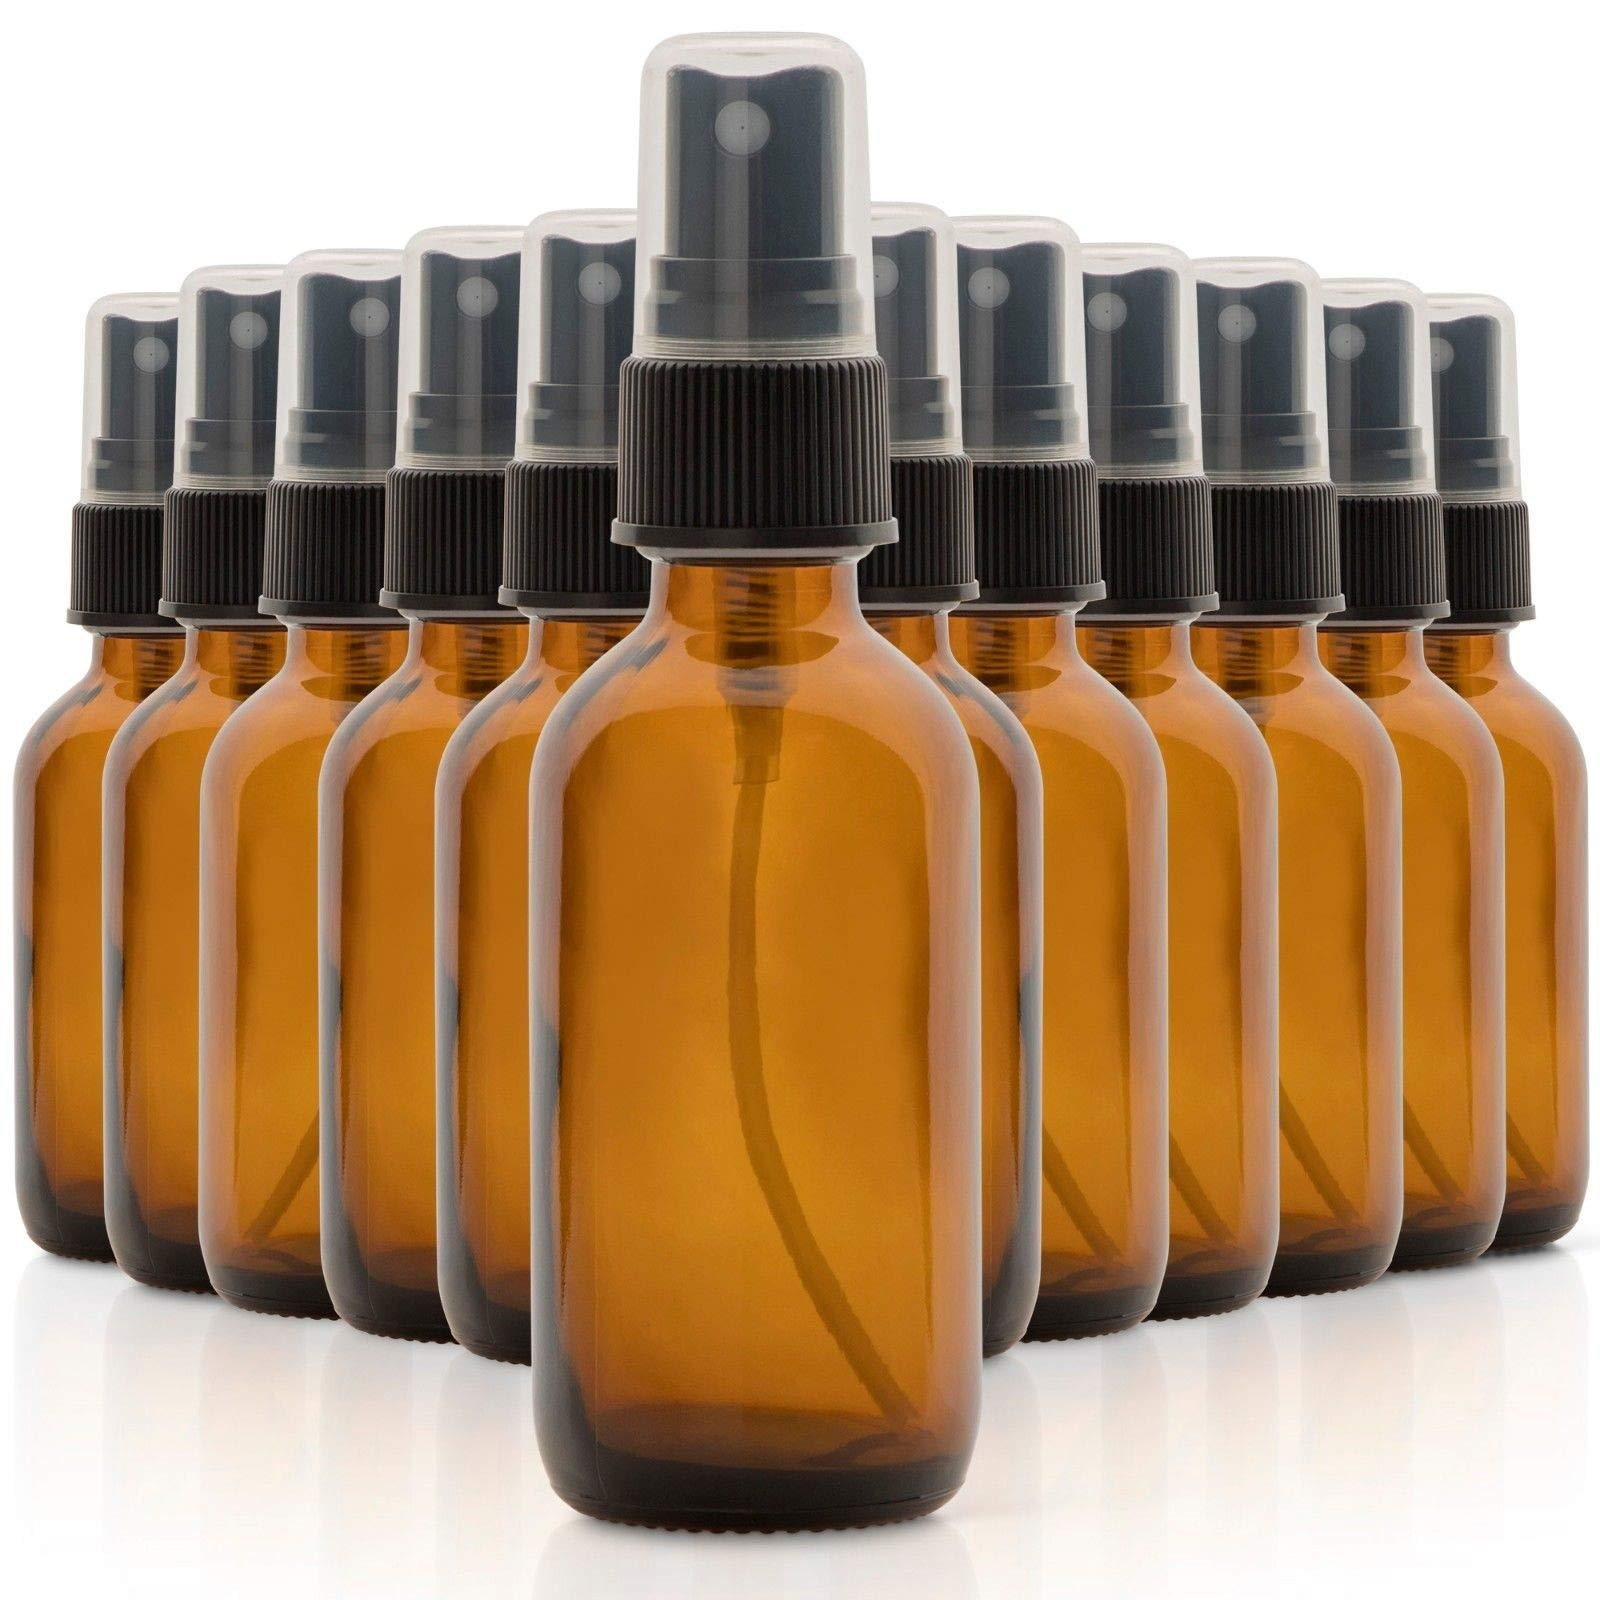 Quality Set of 12, 2 oz Amber Glass Spray Bottles for Essential Oils and Perfumes #PHAS by Bright Sun